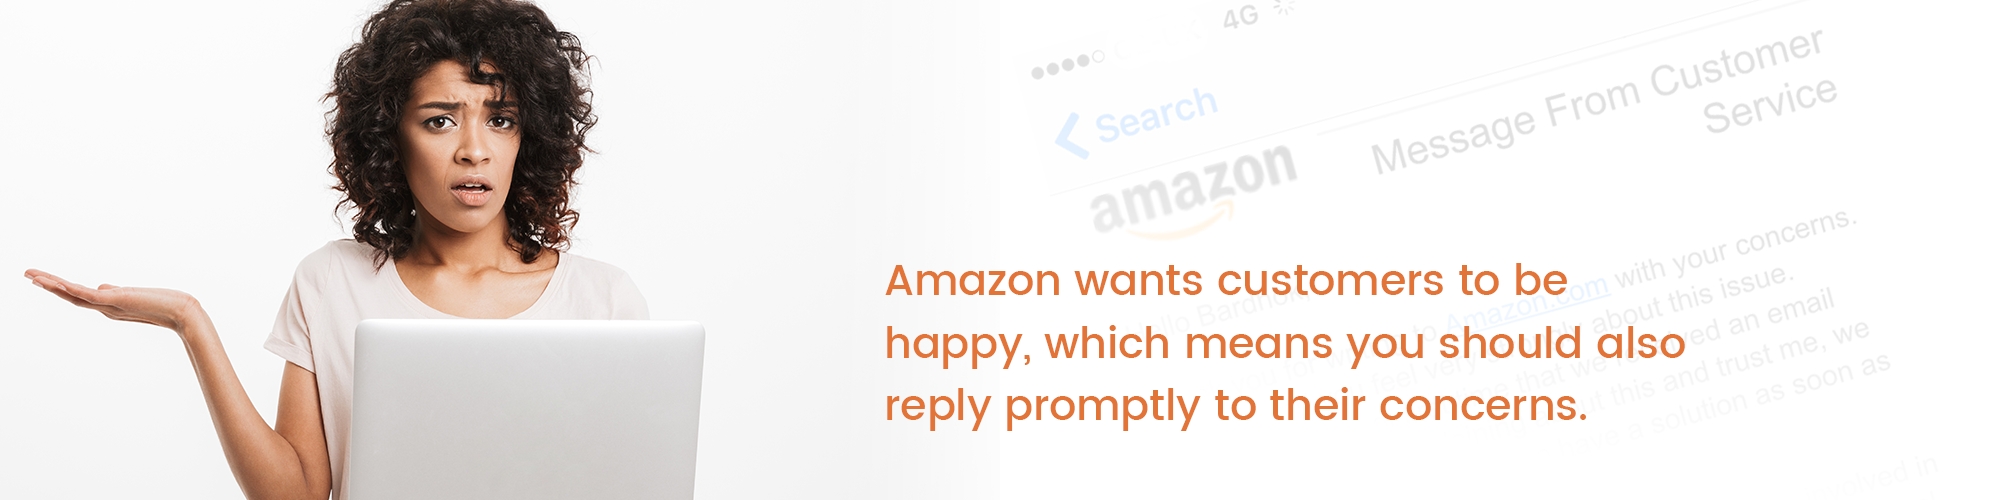 Amazon wants customers to be happy, which means you should also reply promptly to their concerns.